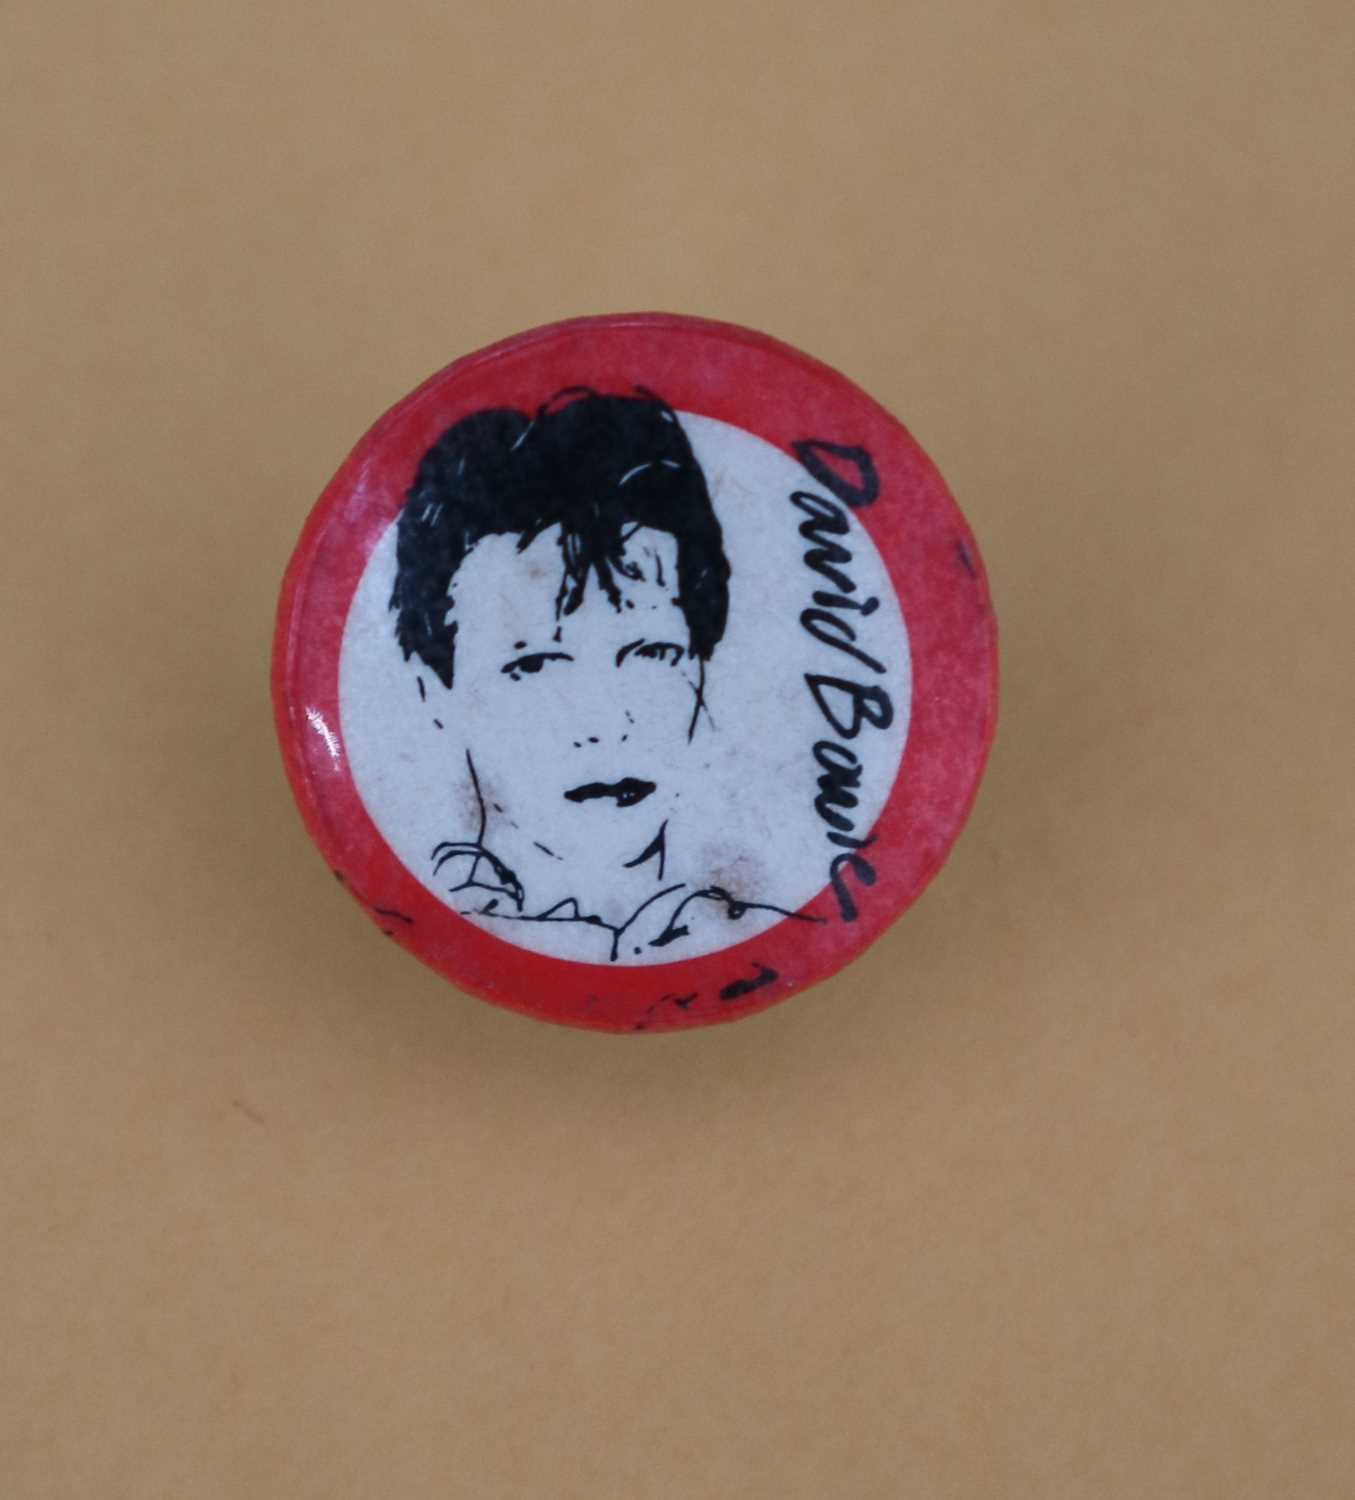 David Bowie Scary Monsters Pin Button Badge